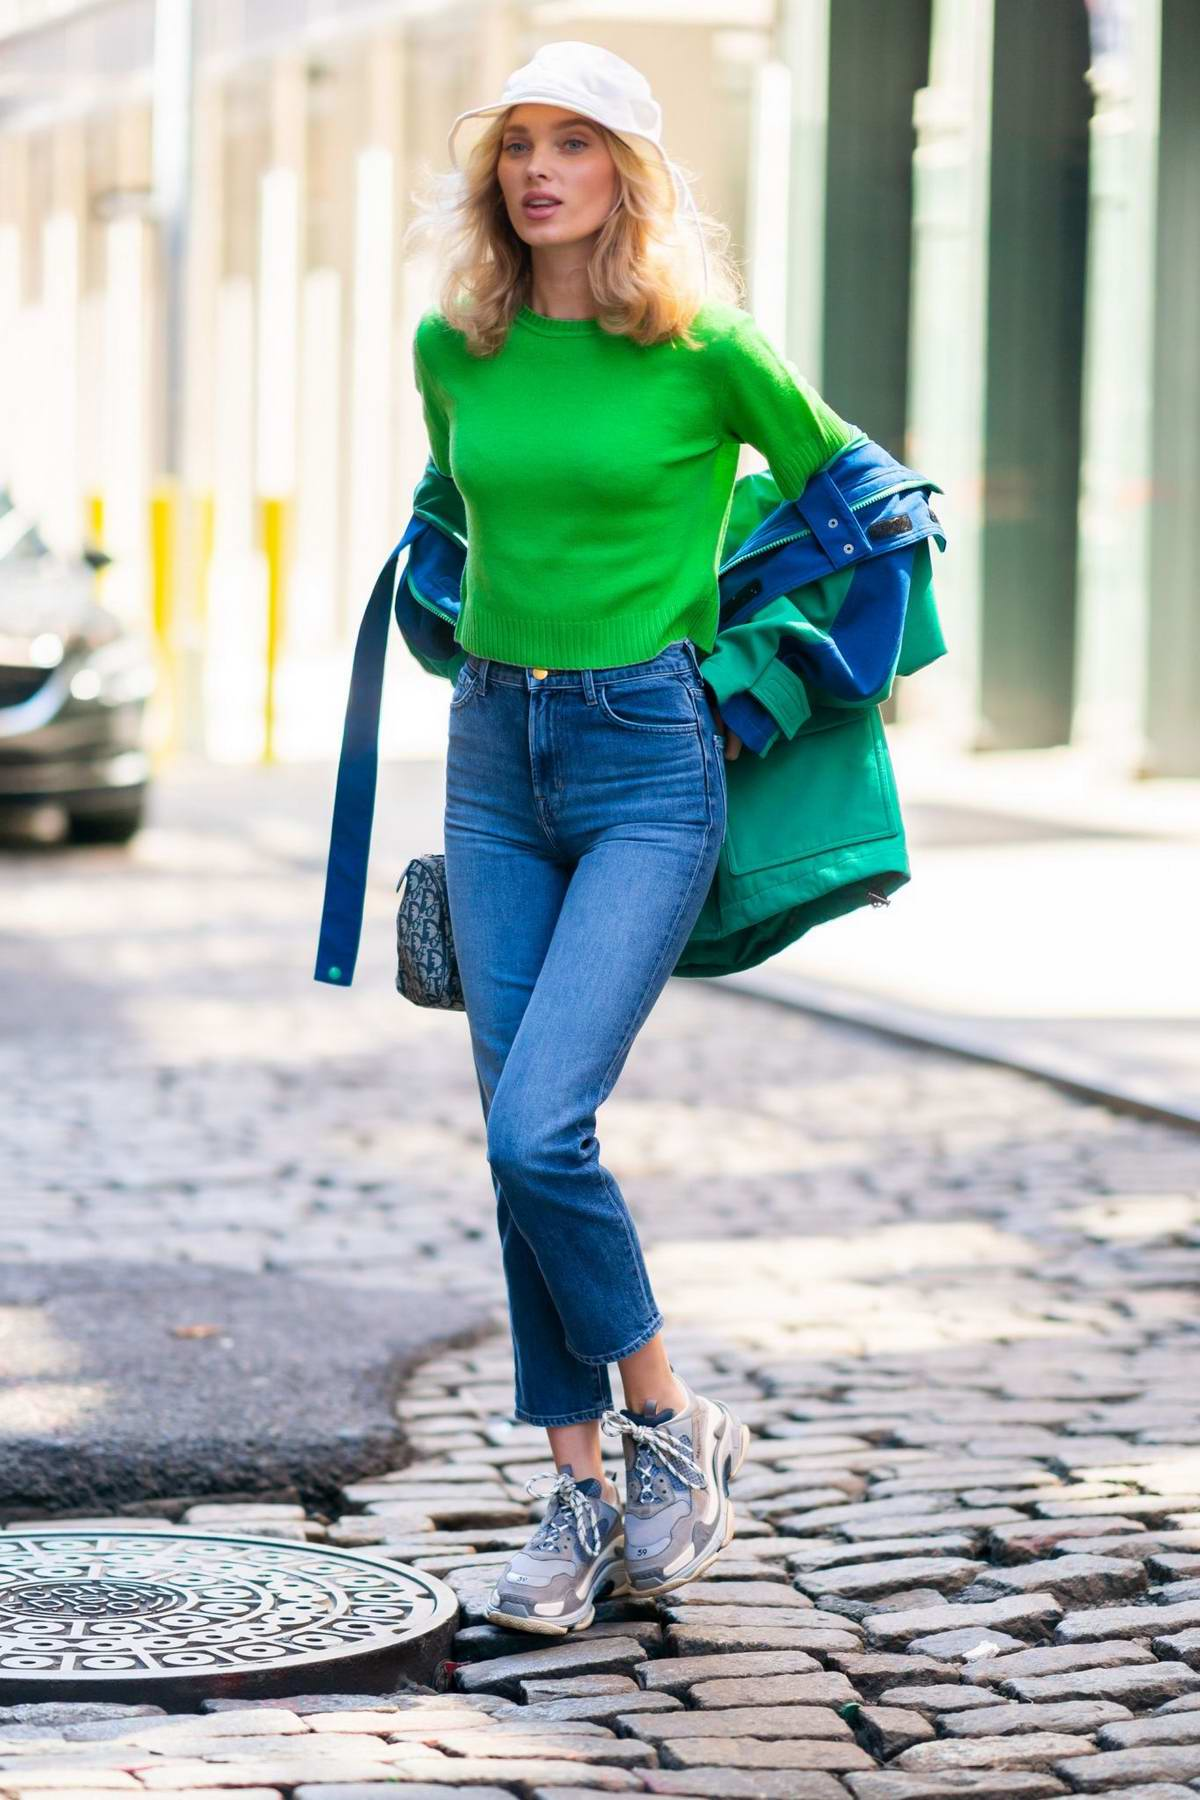 Elsa Hosk wears a bright green top paired with Balenciaga jacket for a outing in New York City